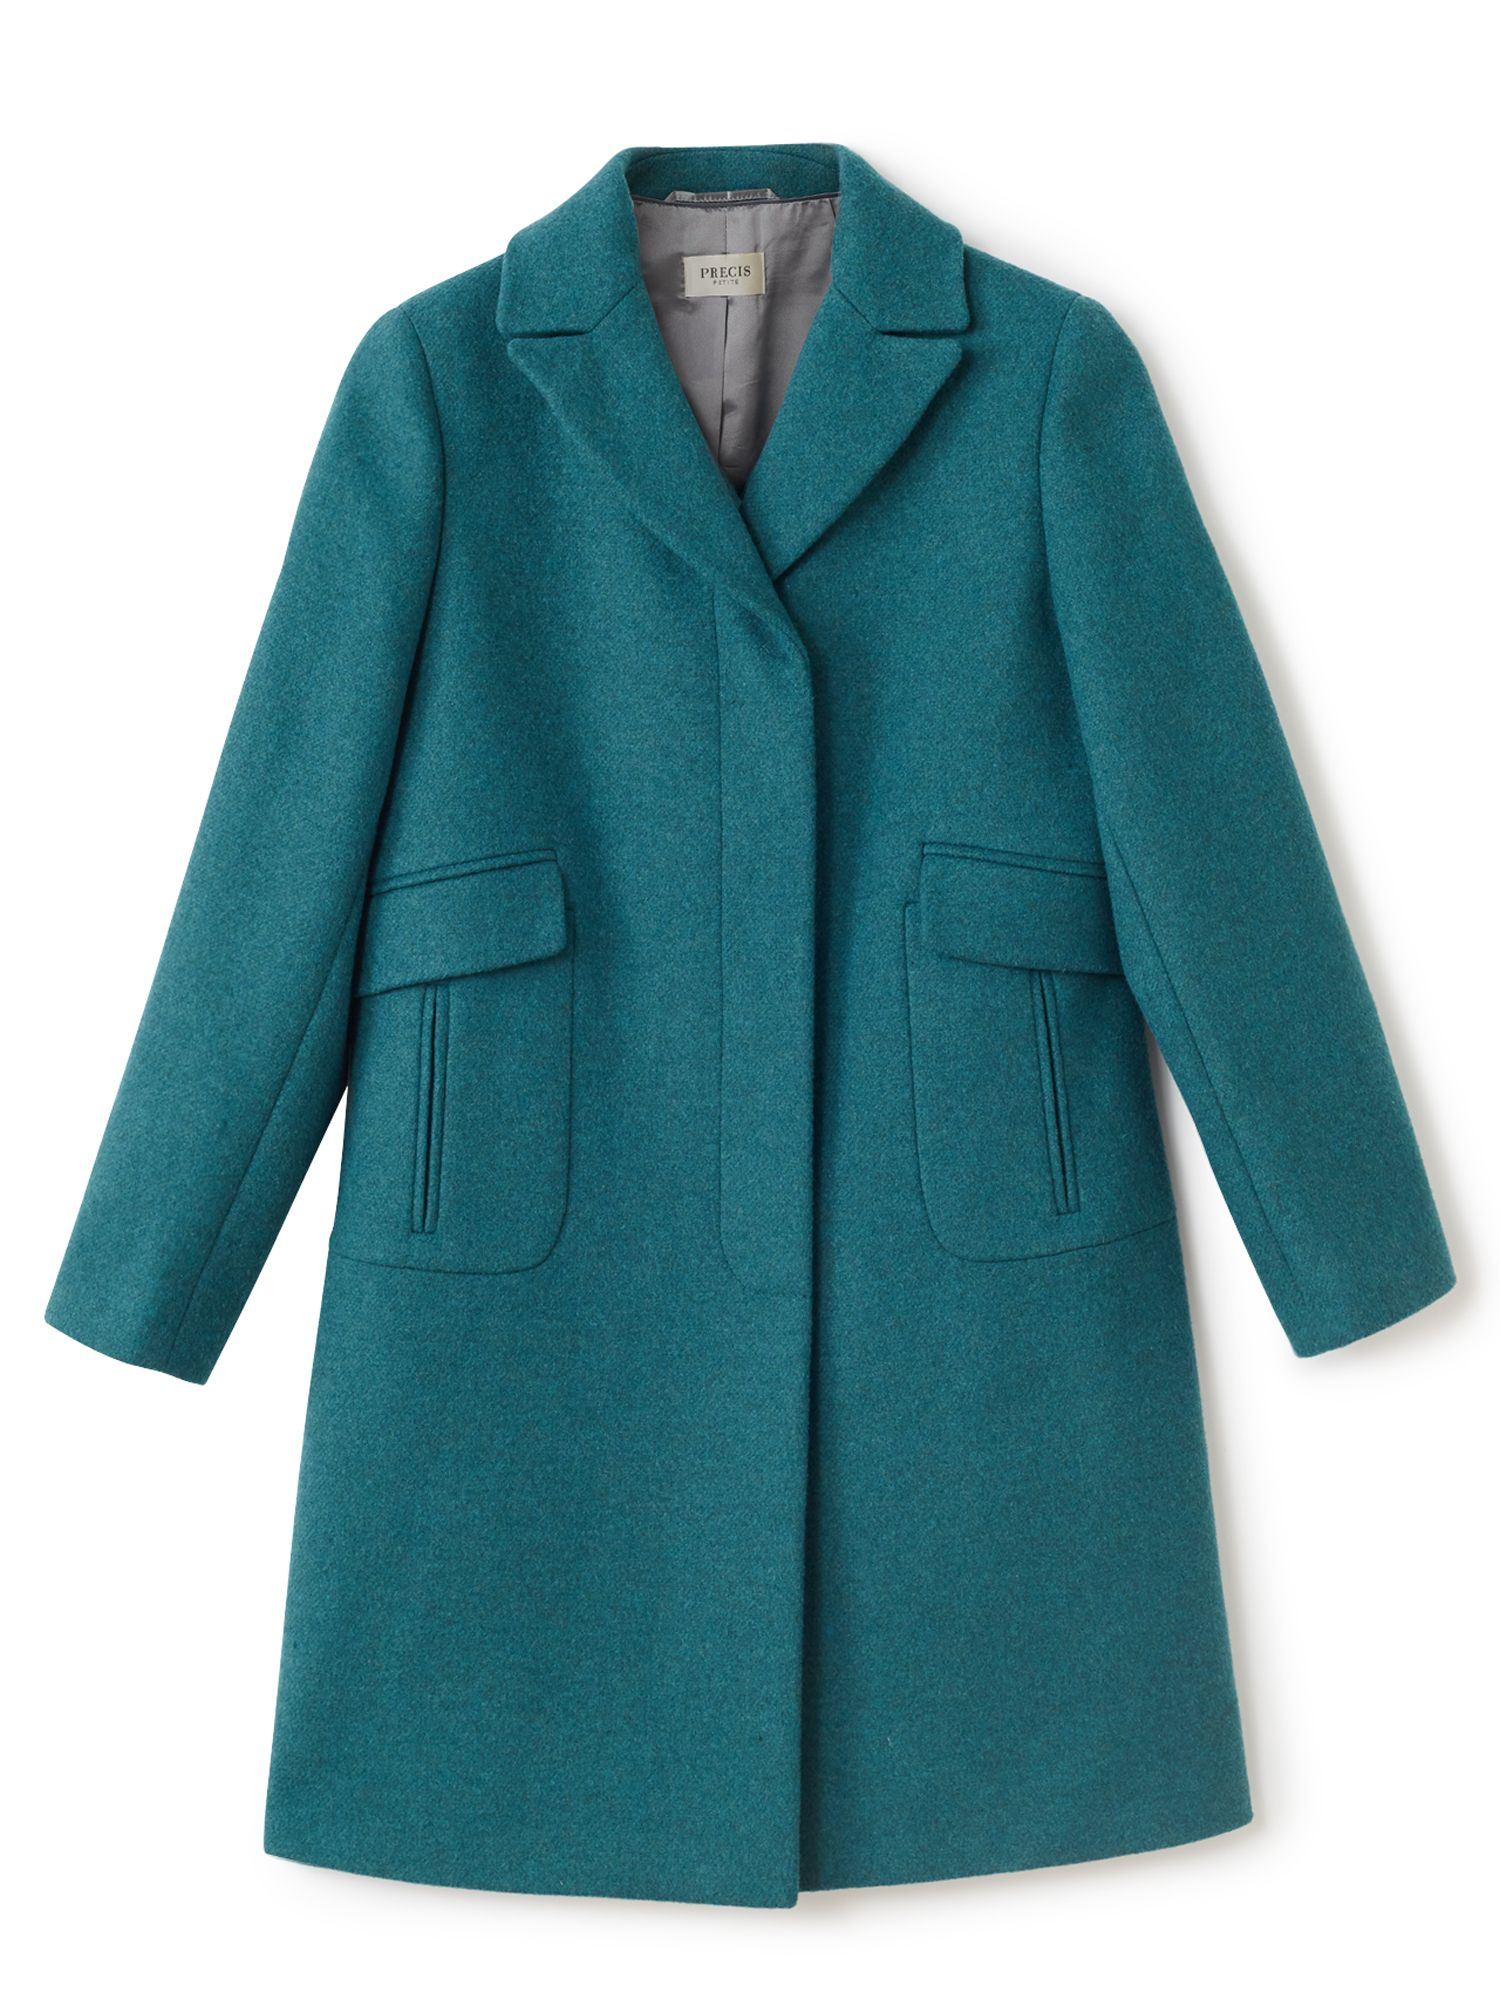 Precis Petite Allison Mid Coat, Green